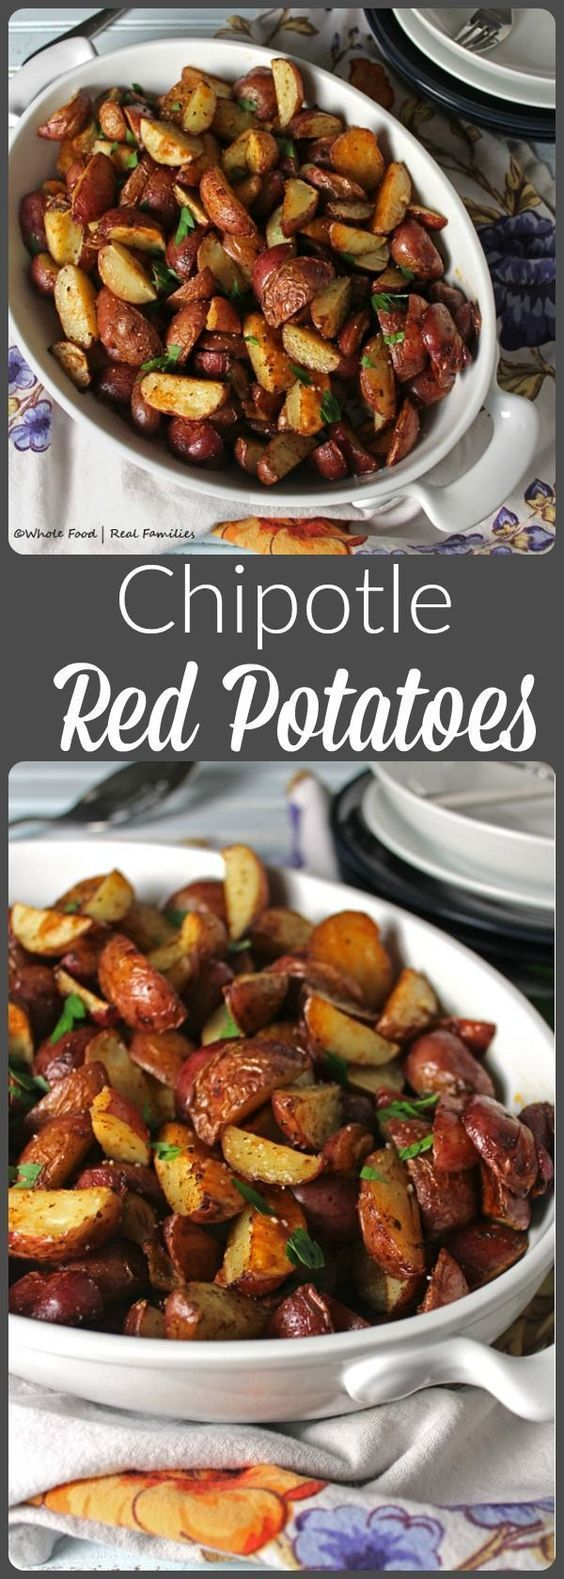 Chipotle Red Potatoes are crisp and full of flavor but not to spicy for kids! My family loves these!